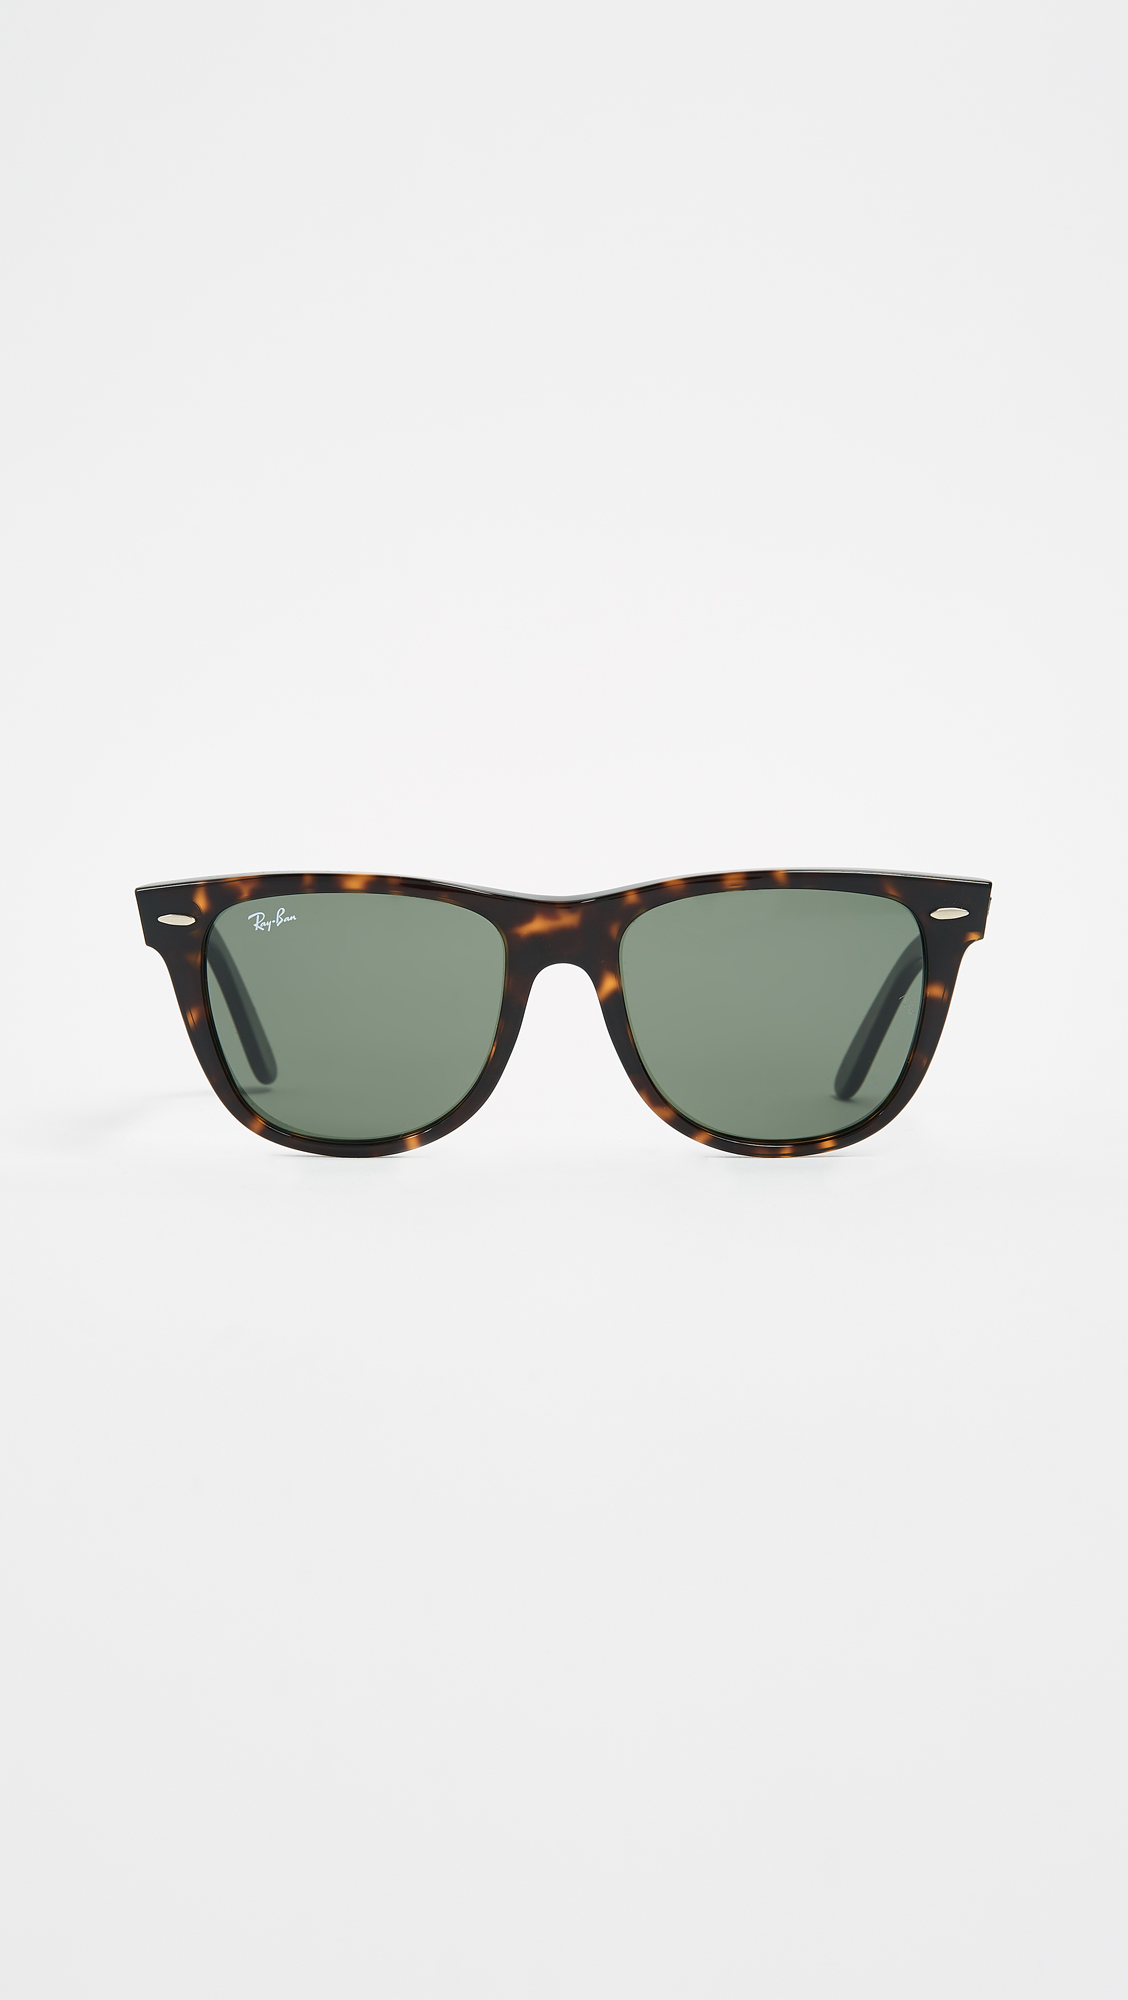 bd5bc87659 Ray-Ban RB2140 Wayfarer Outsiders Oversized Sunglasses